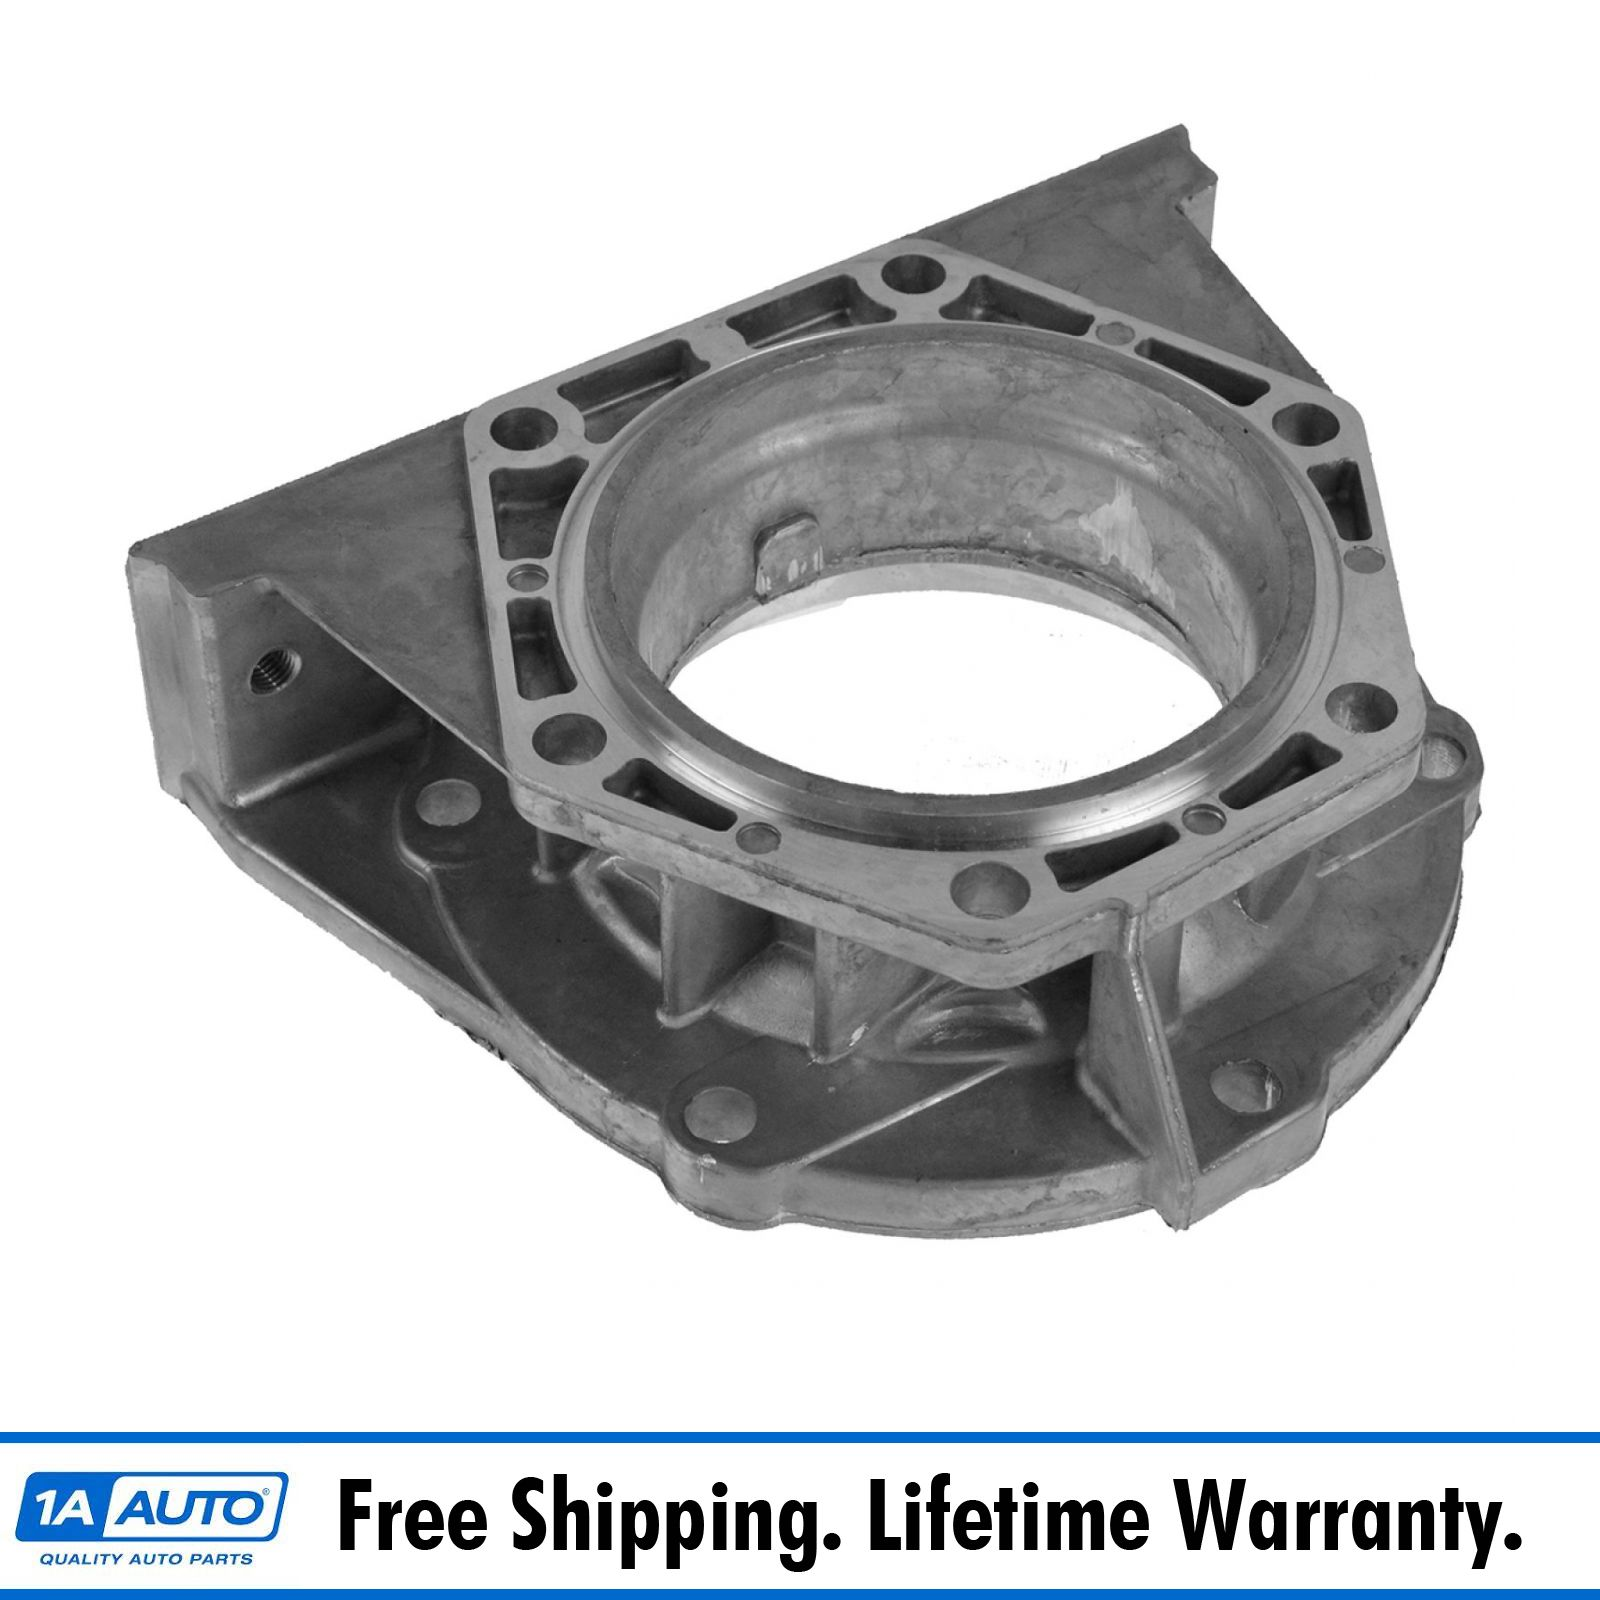 hight resolution of oem transfer case adapter for avalanche silverado tahoe suburban sierra yukon gm